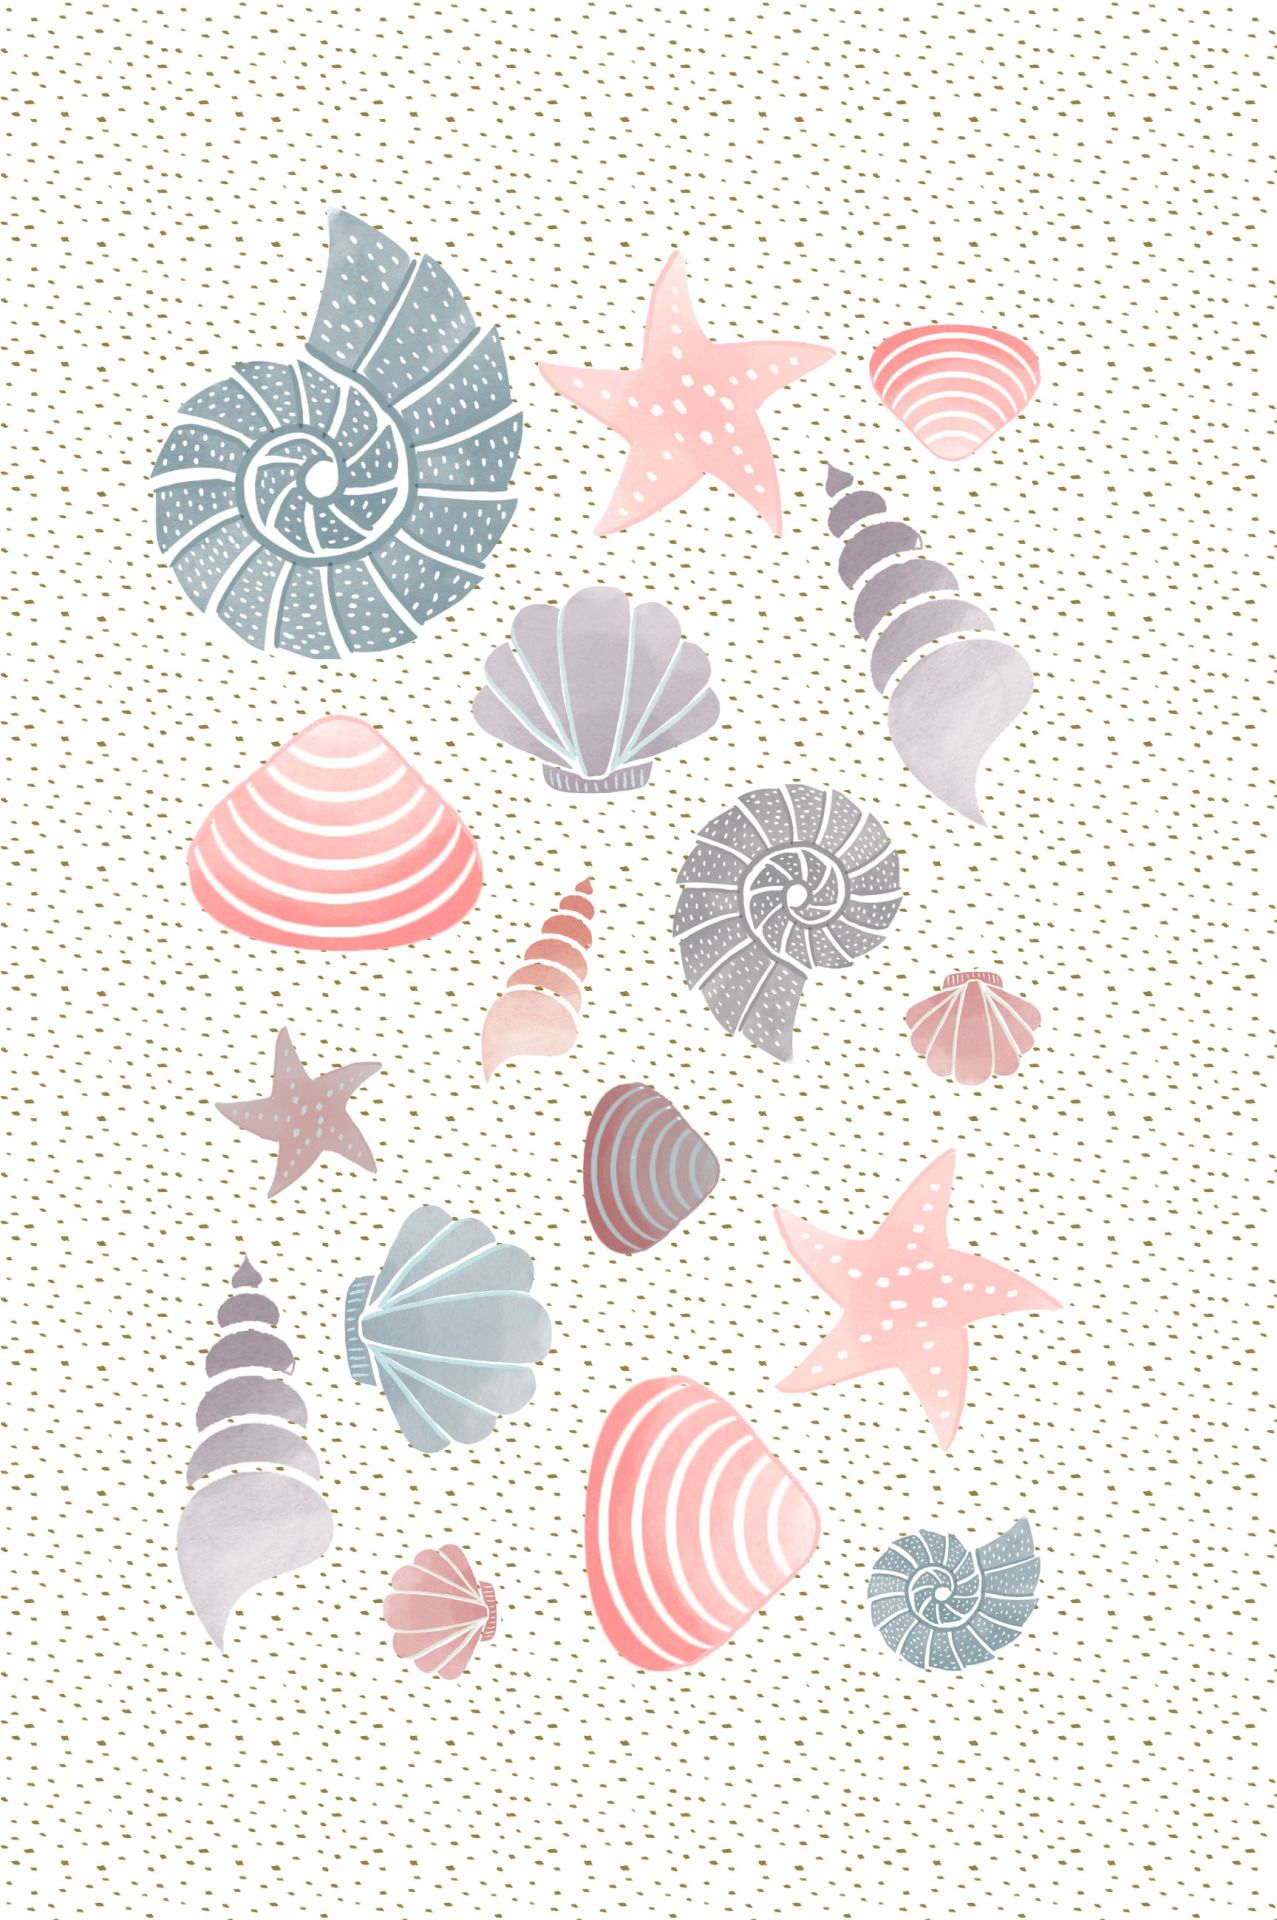 Tumblr iphone wallpaper summer - Mariebretin Coquillages Par Marie Bretin Pretty Iphone Wallpapersiphone Wallpaper Summersummer